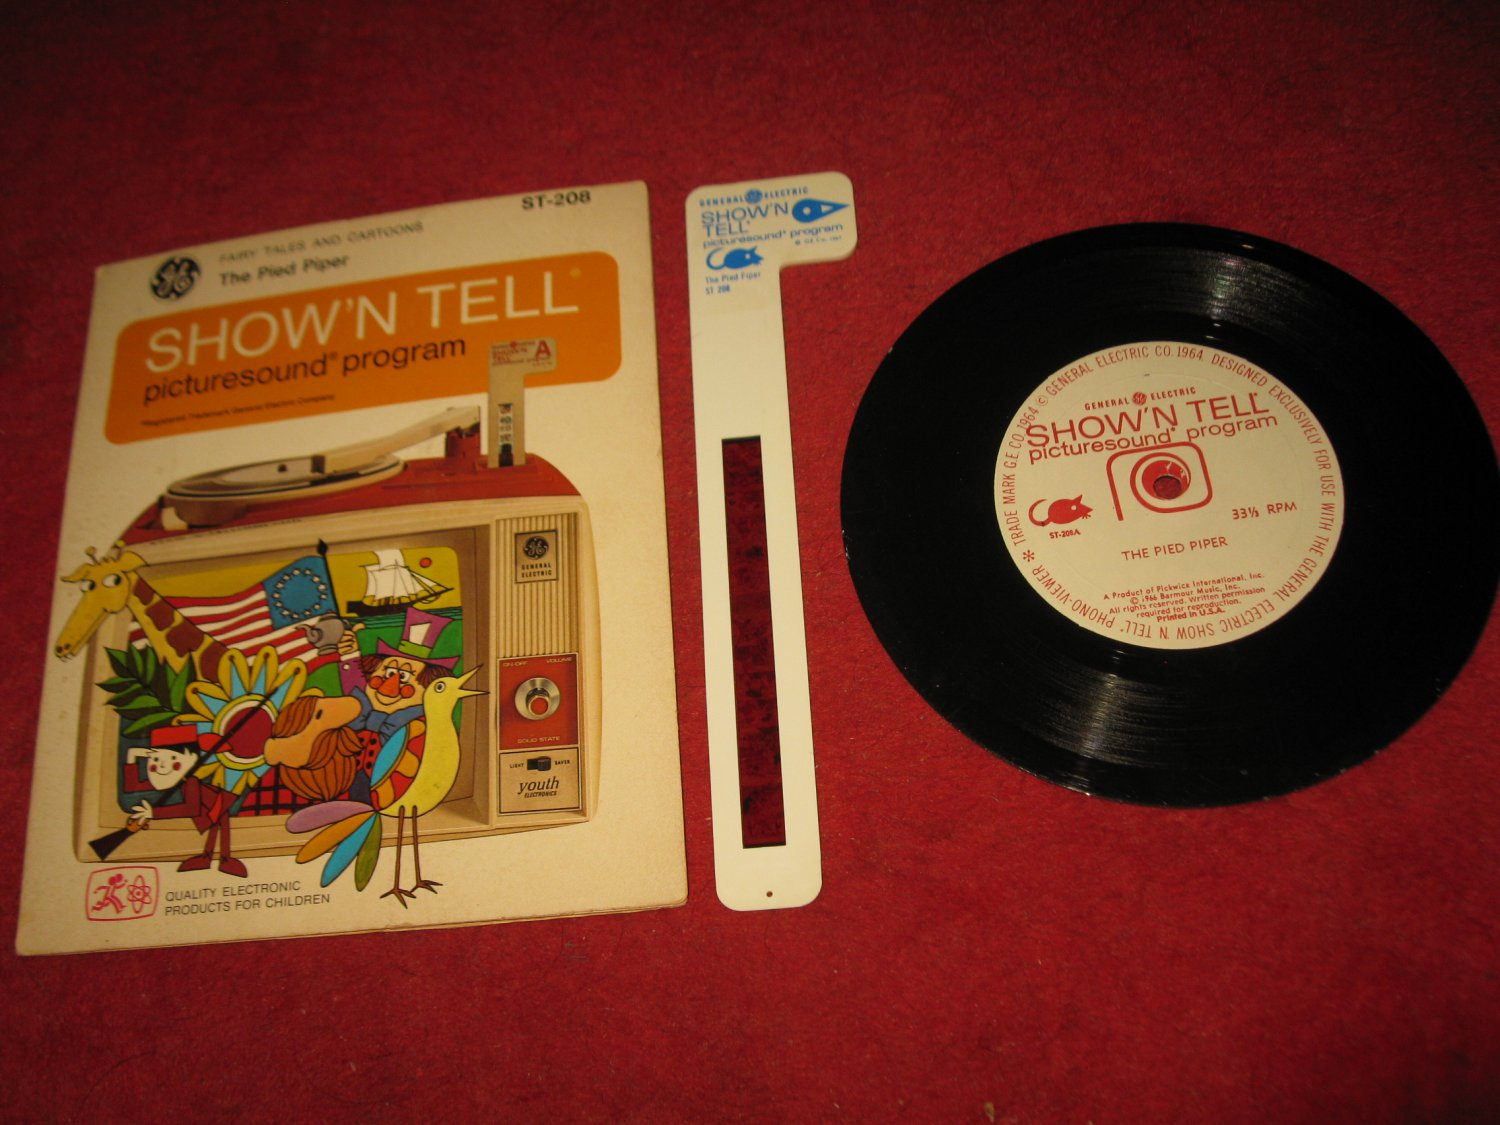 vintage 1966 GE Show 'N Tell Record and Film Cel Set #ST-208 - The Pied Piper